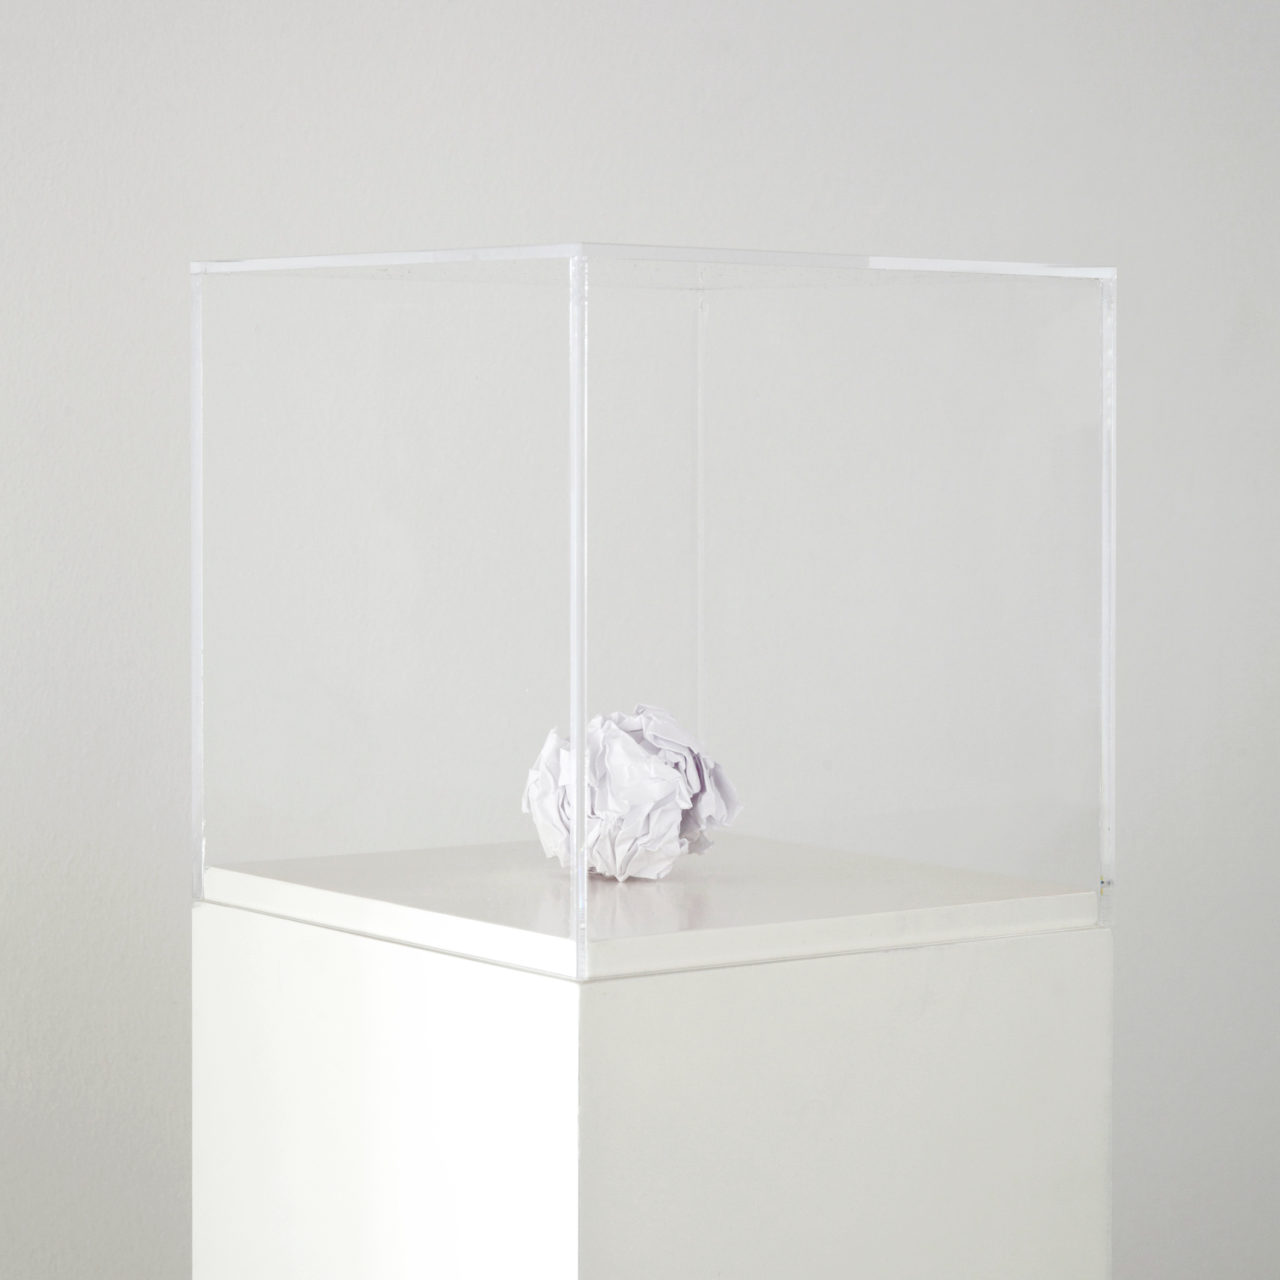 Martin Creed, Work No. 218: A sheet of paper crumpled into a ball (US letter) (1999)